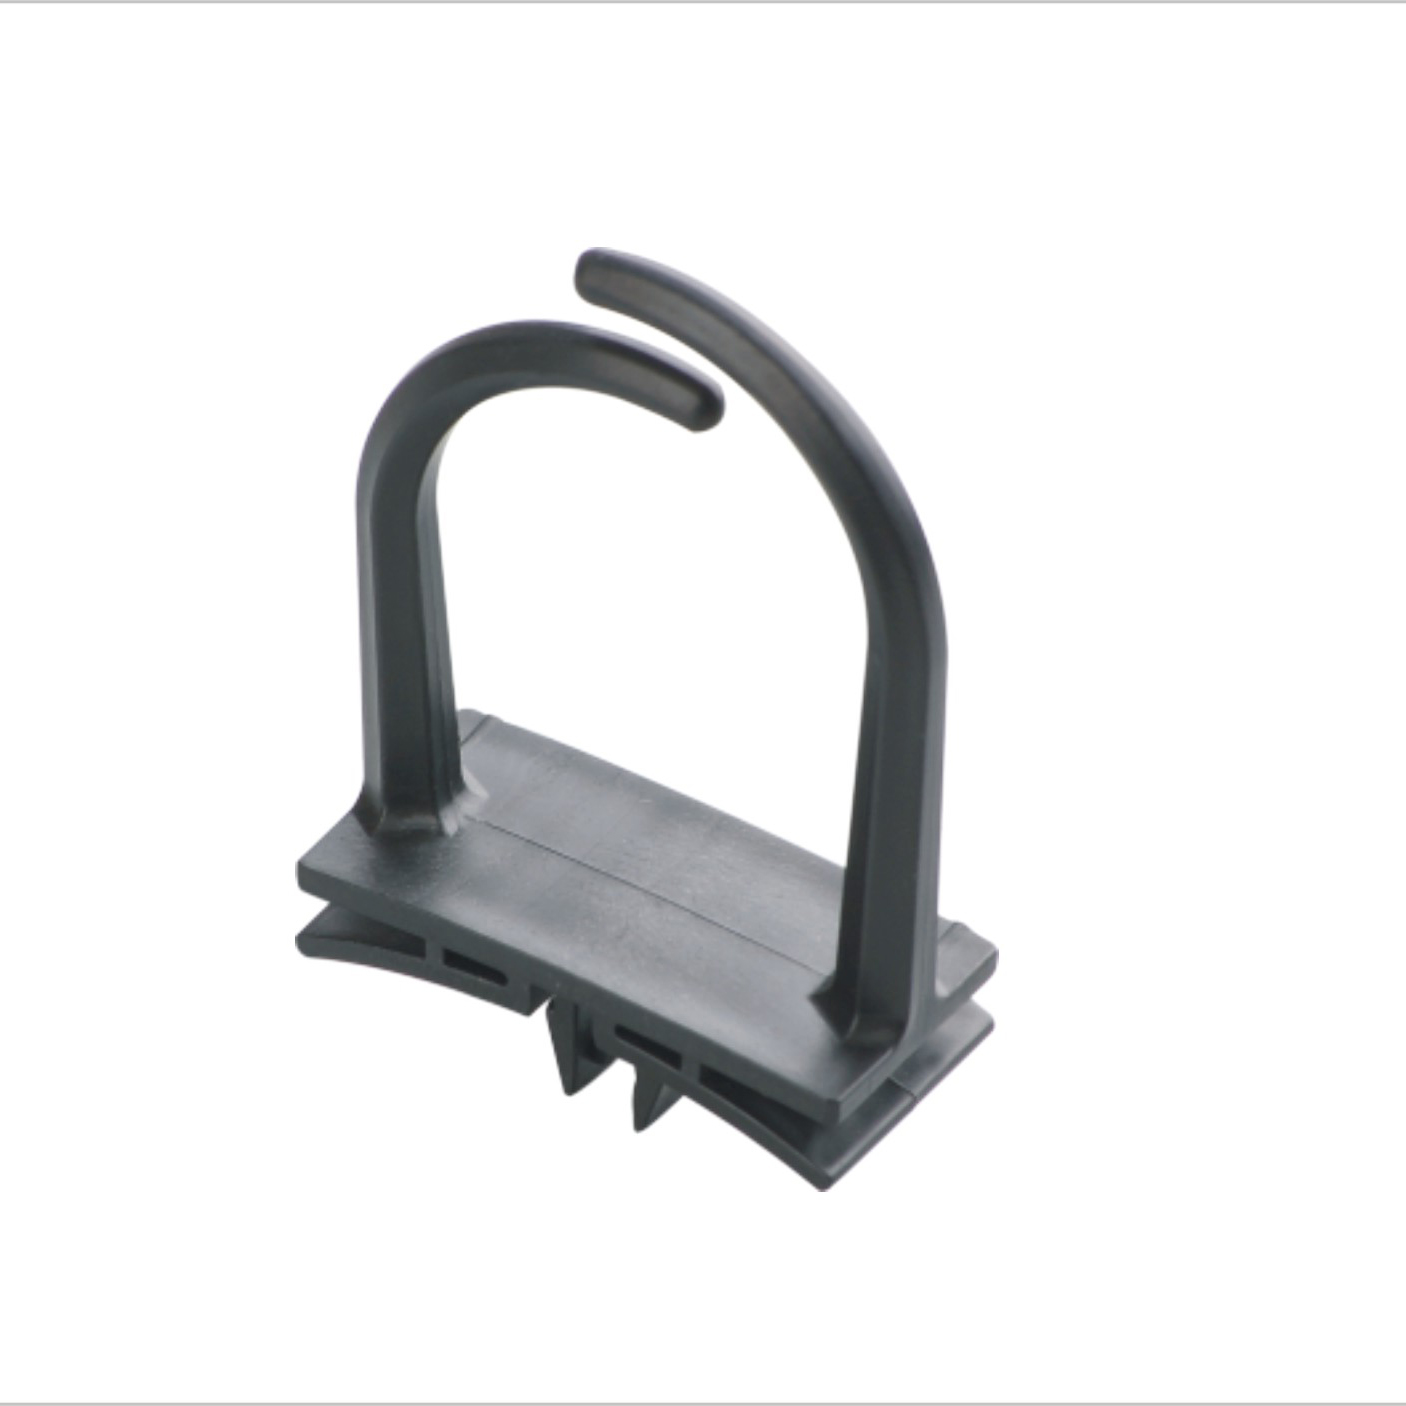 MT-4501 Cable Management Plastic Cable Ring for Network Manager Ring